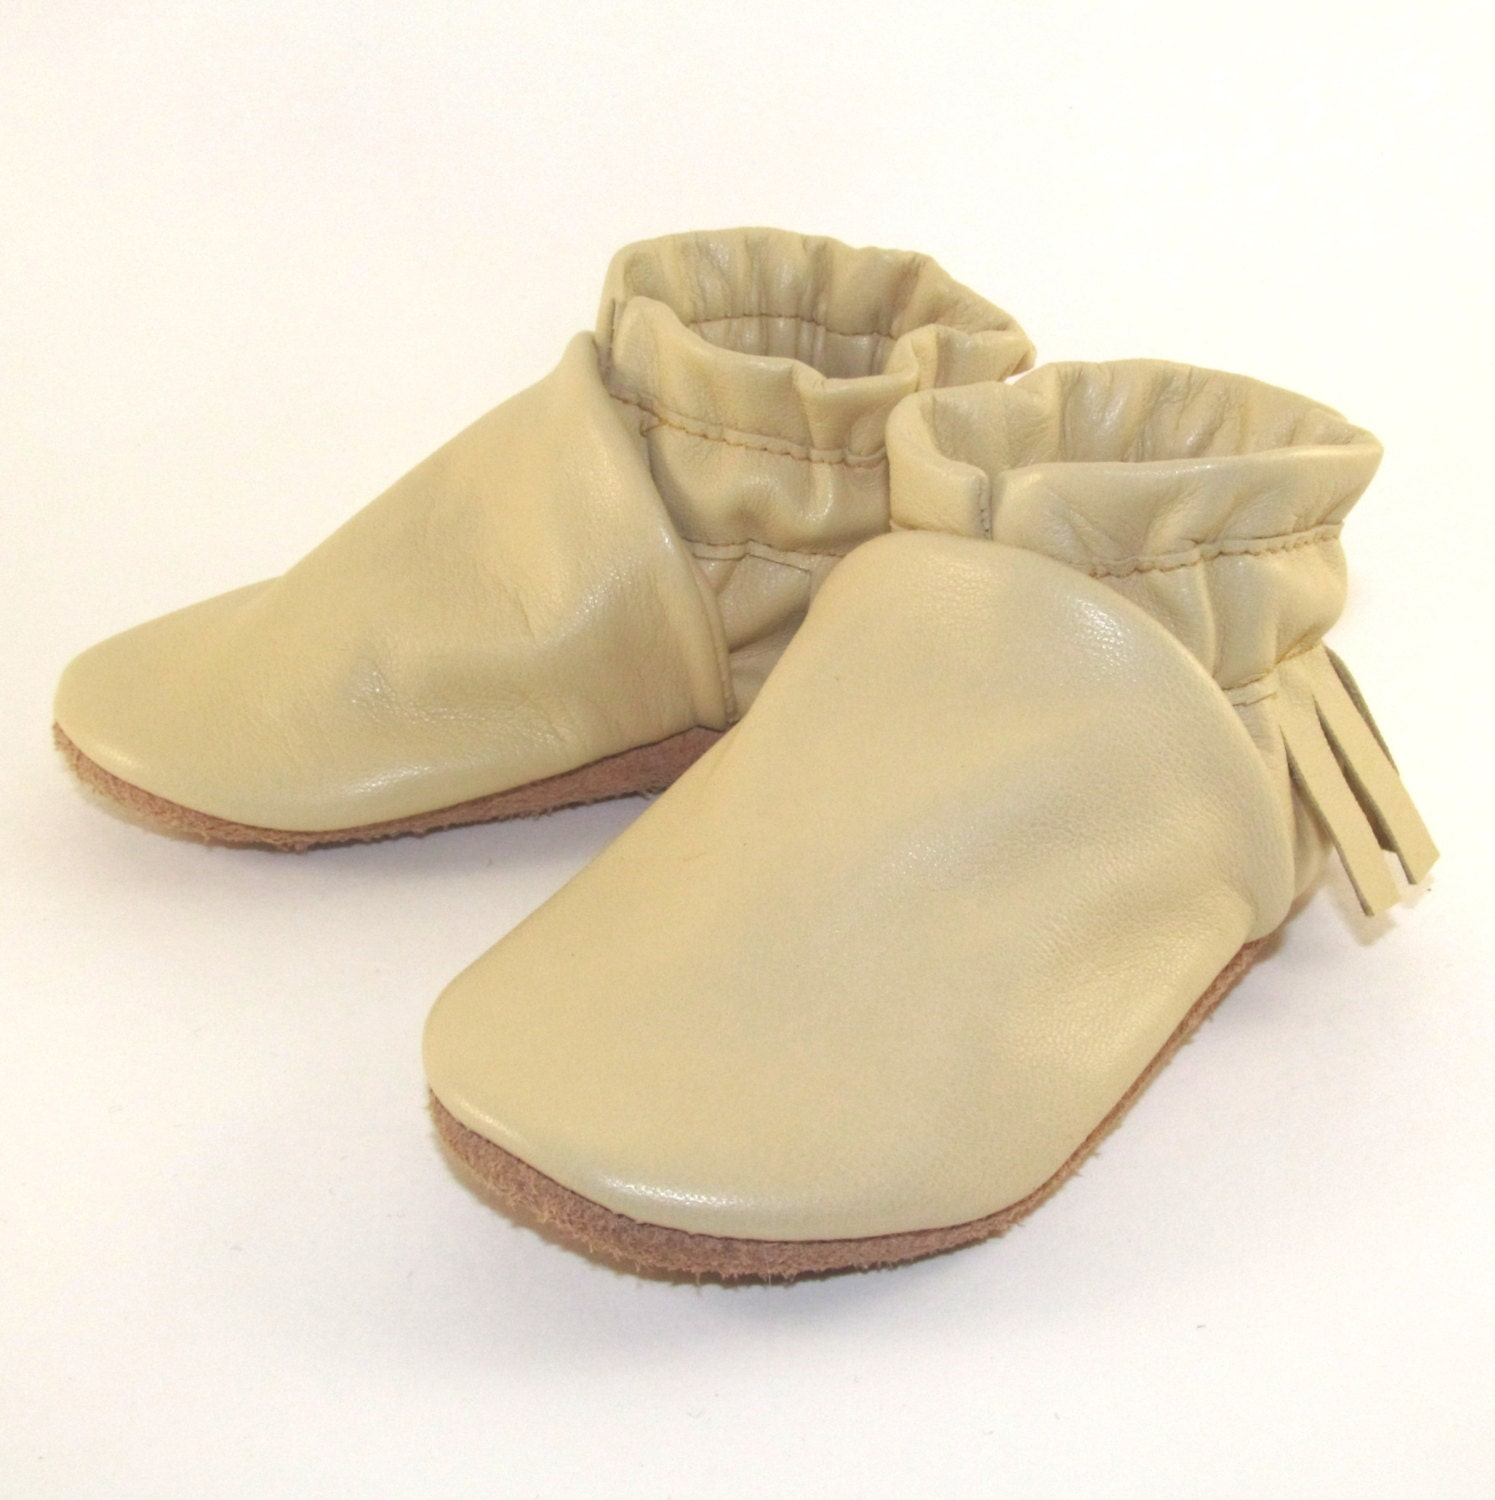 soft leather baby shoes moccasins eco friendly 12 to 18 month